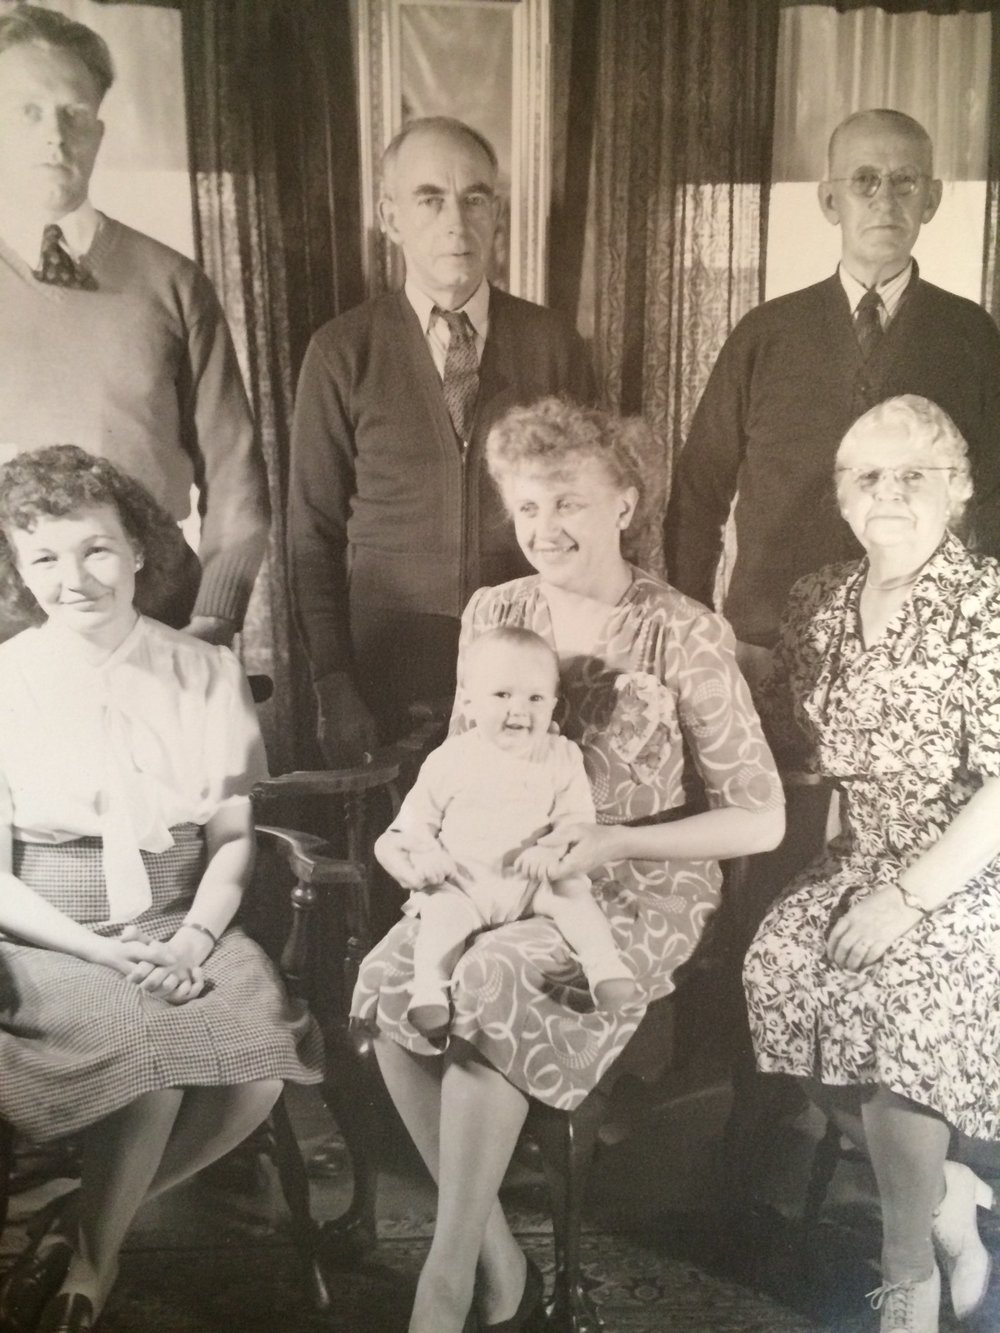 Top Left to Right: Grandpa, Great Grandpa, (one of) Great Great Grandpa  Bottom Left to Right: Grandma, Great Grandma, Meme and the baby is my father